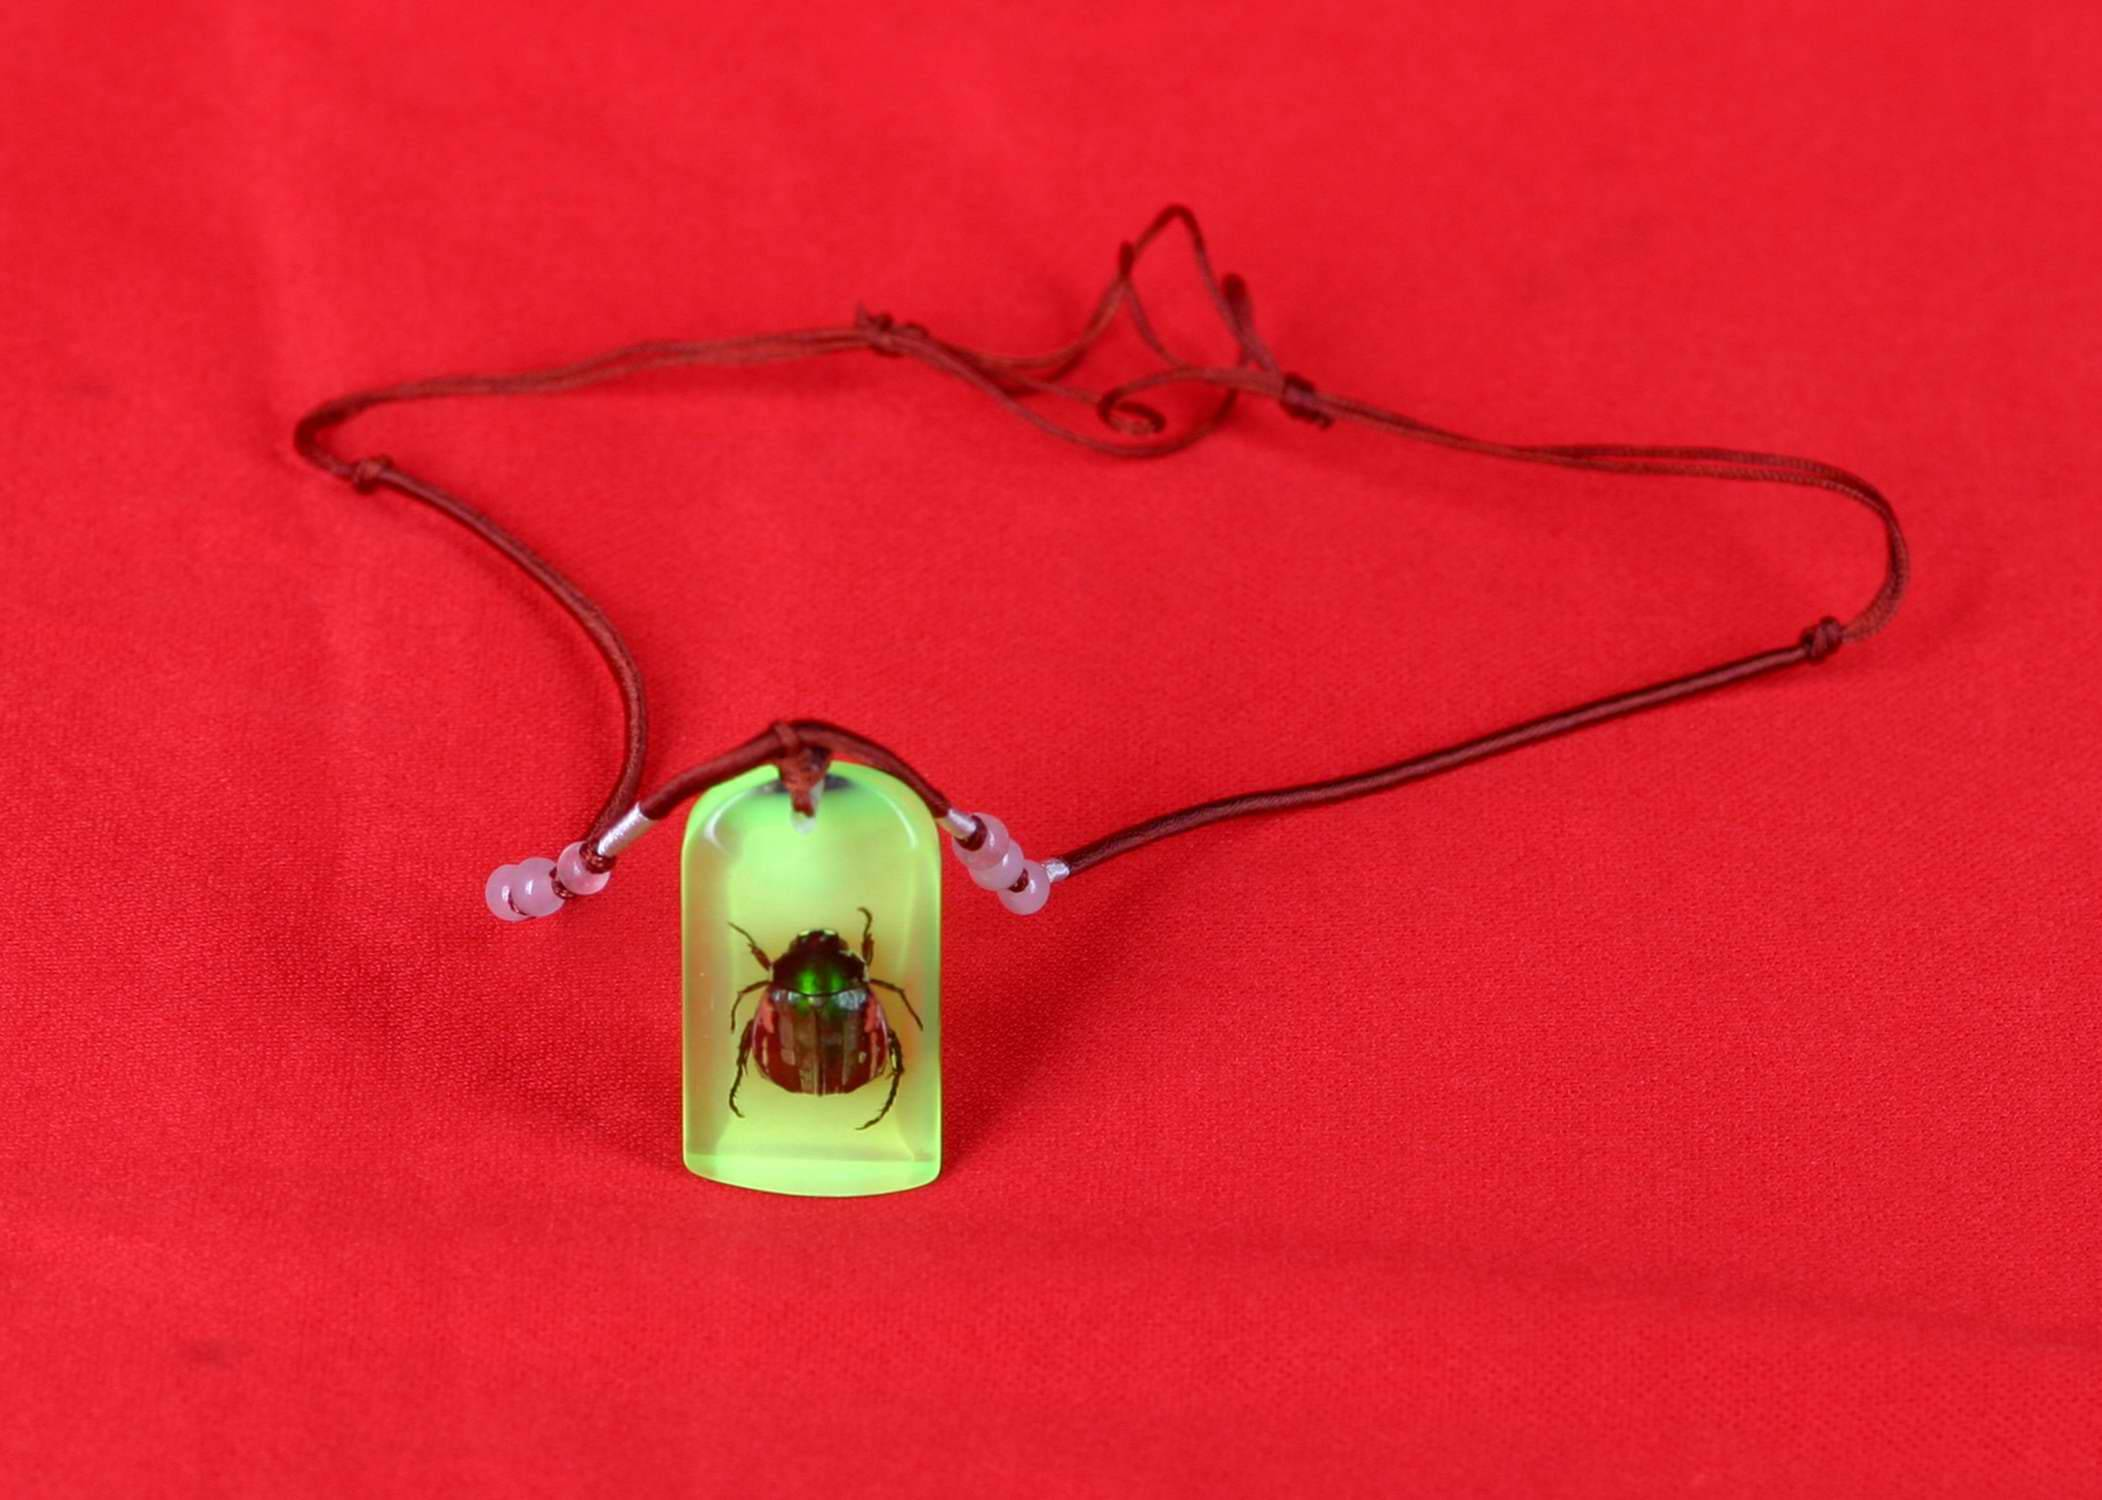 Real Insect, Beetle, Butterfles In Artificial Amber For Jewelry Necklace, Bracelet, Pendant